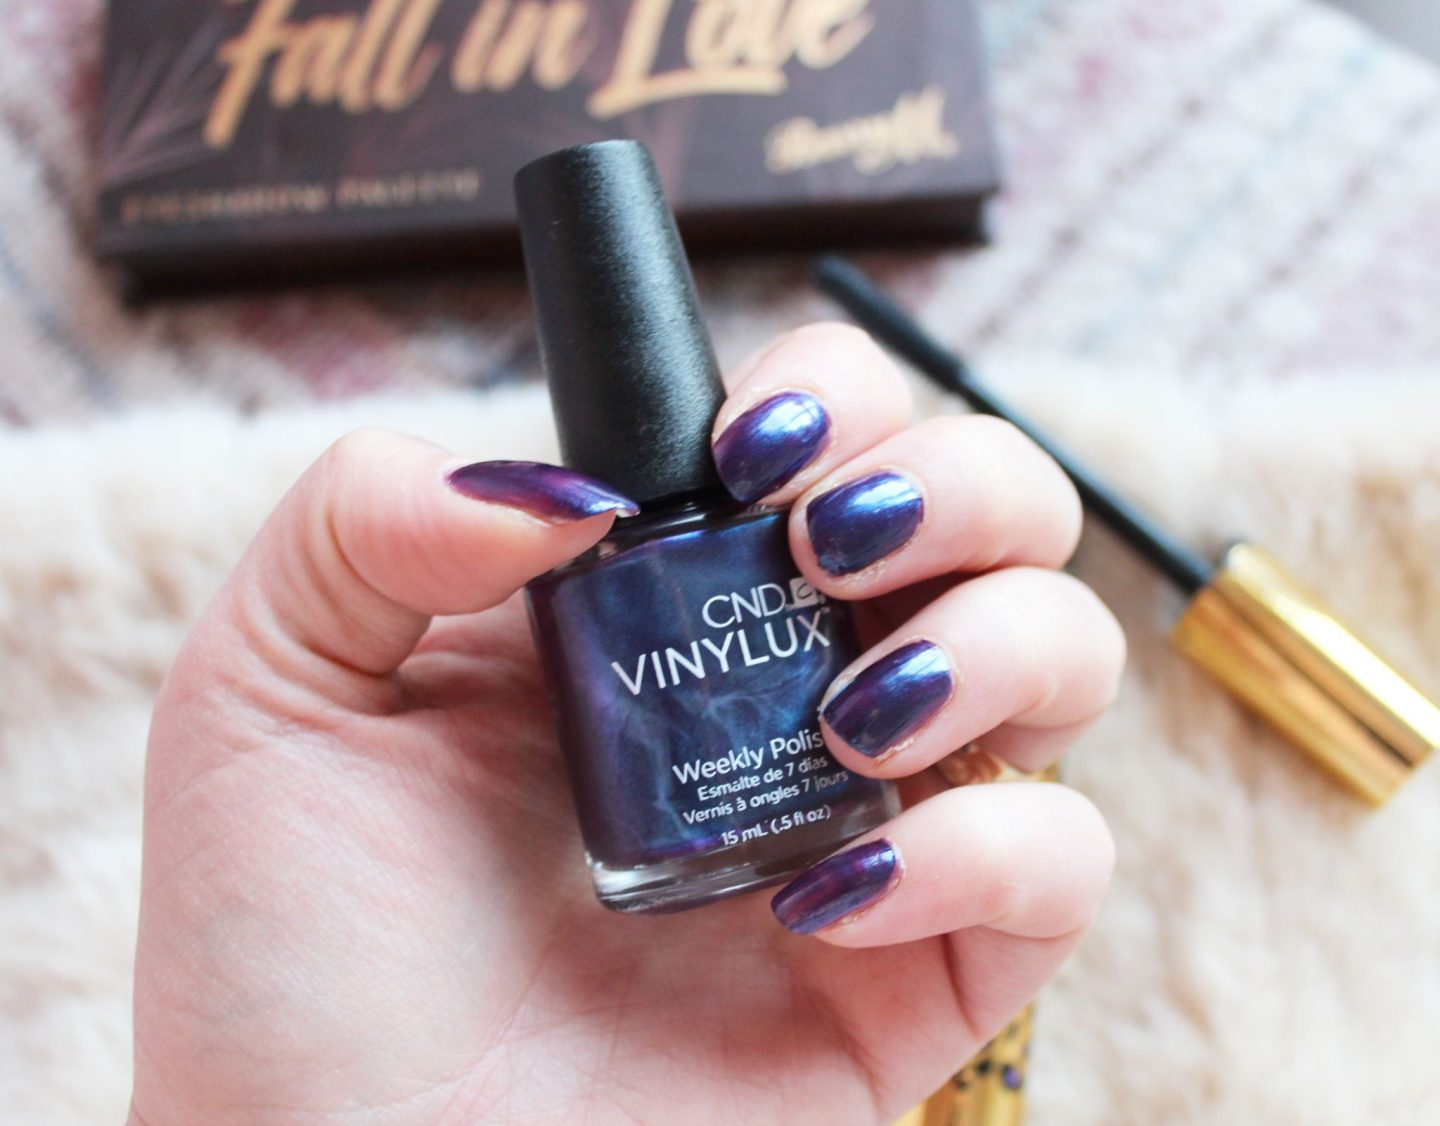 CND Vinylux Weekly Nail Polish in Eternal Midnight